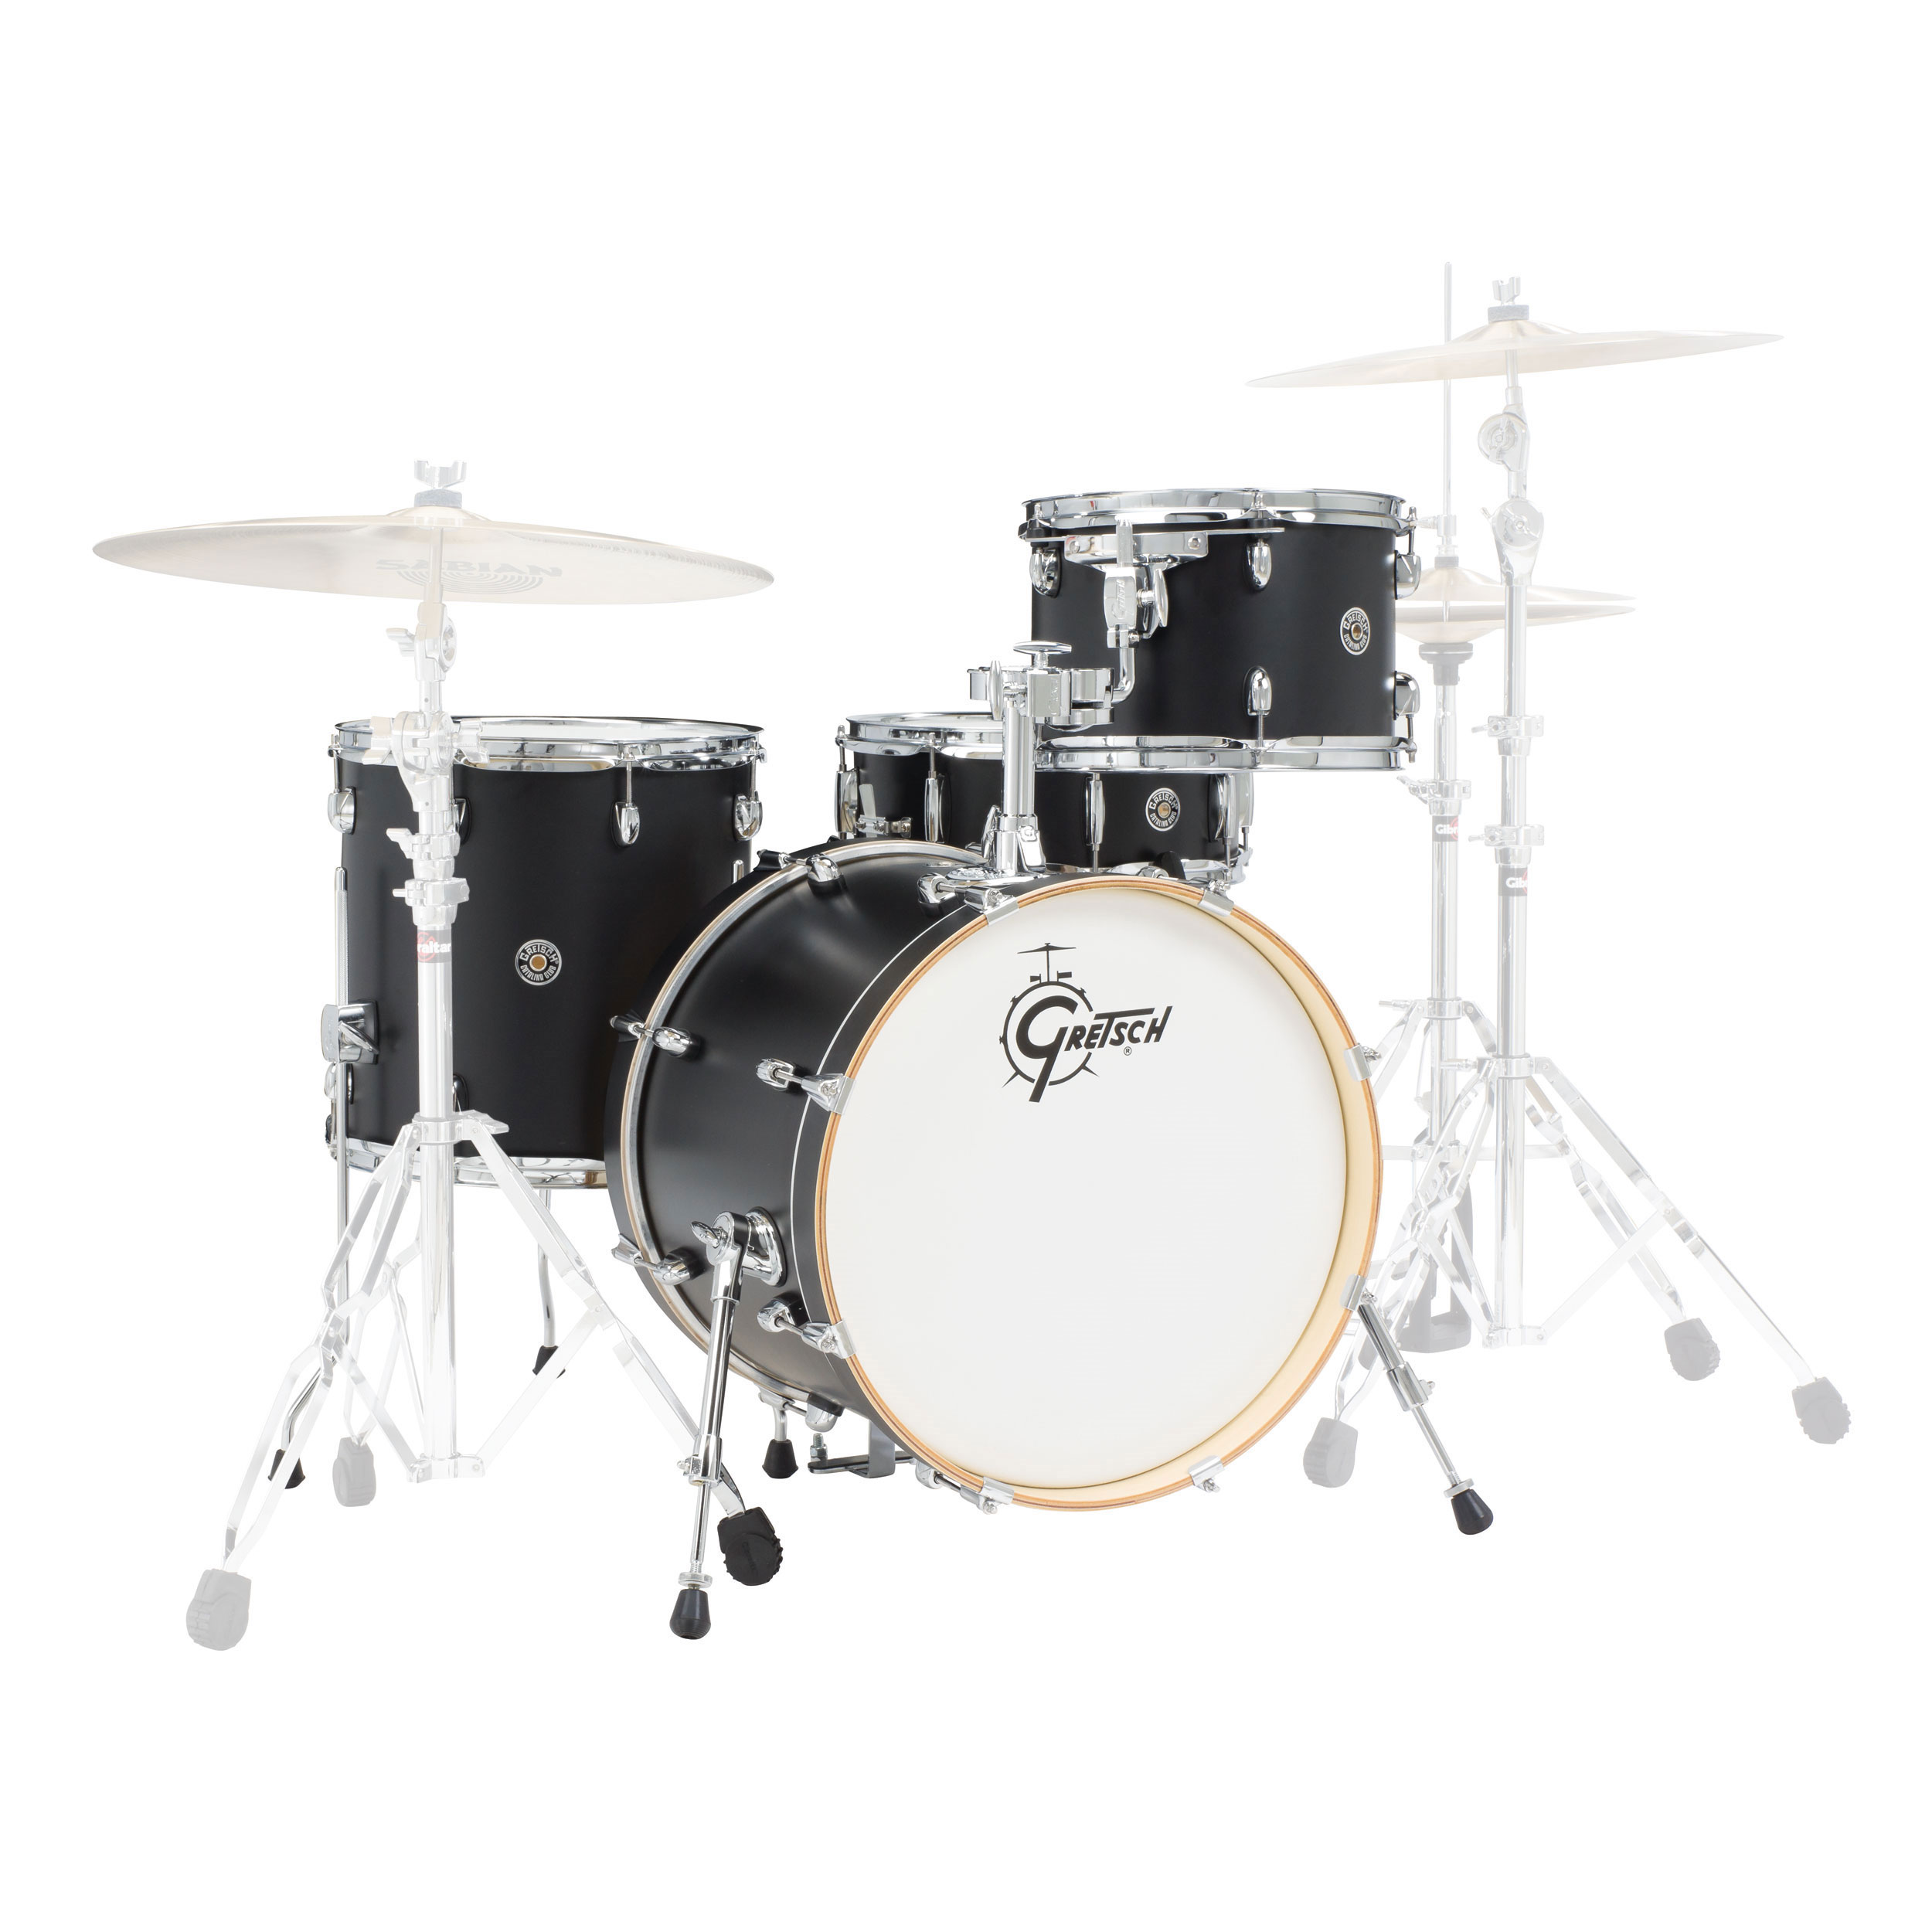 "Gretsch Catalina Club Classic 4-Piece Drum Set Shell Pack (20"" Bass, 12/14"" Toms, 14"" Snare) with Satin Finish"